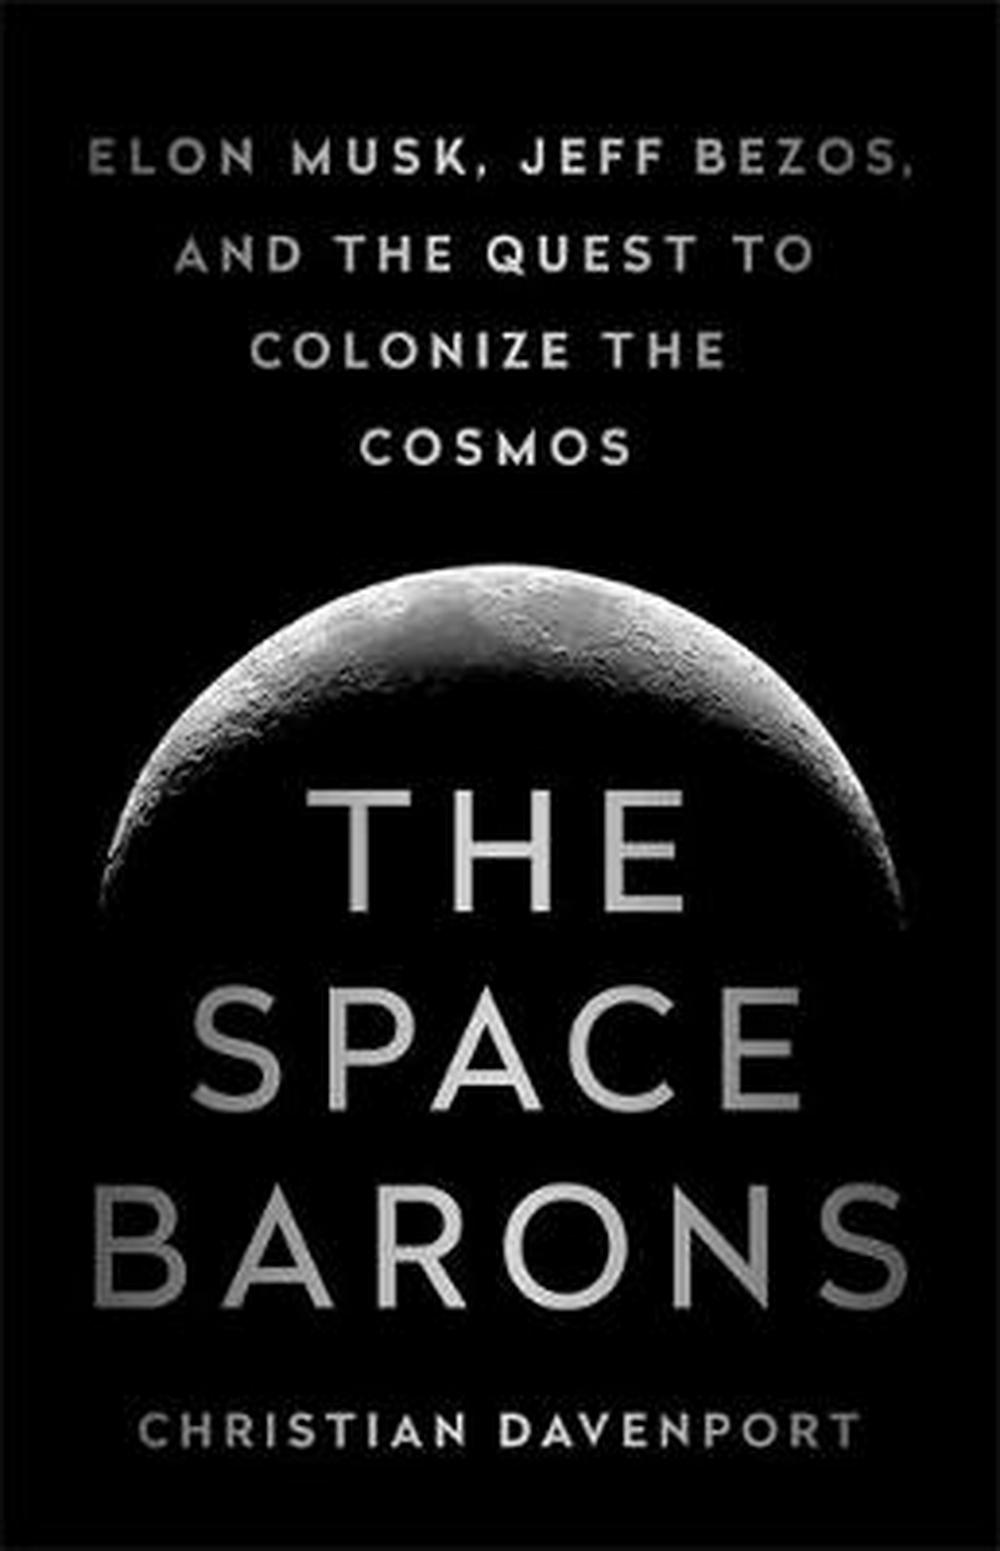 The Space Barons: Jeff Bezos, Elon Musk and the Quest to Colonize the Cosmos